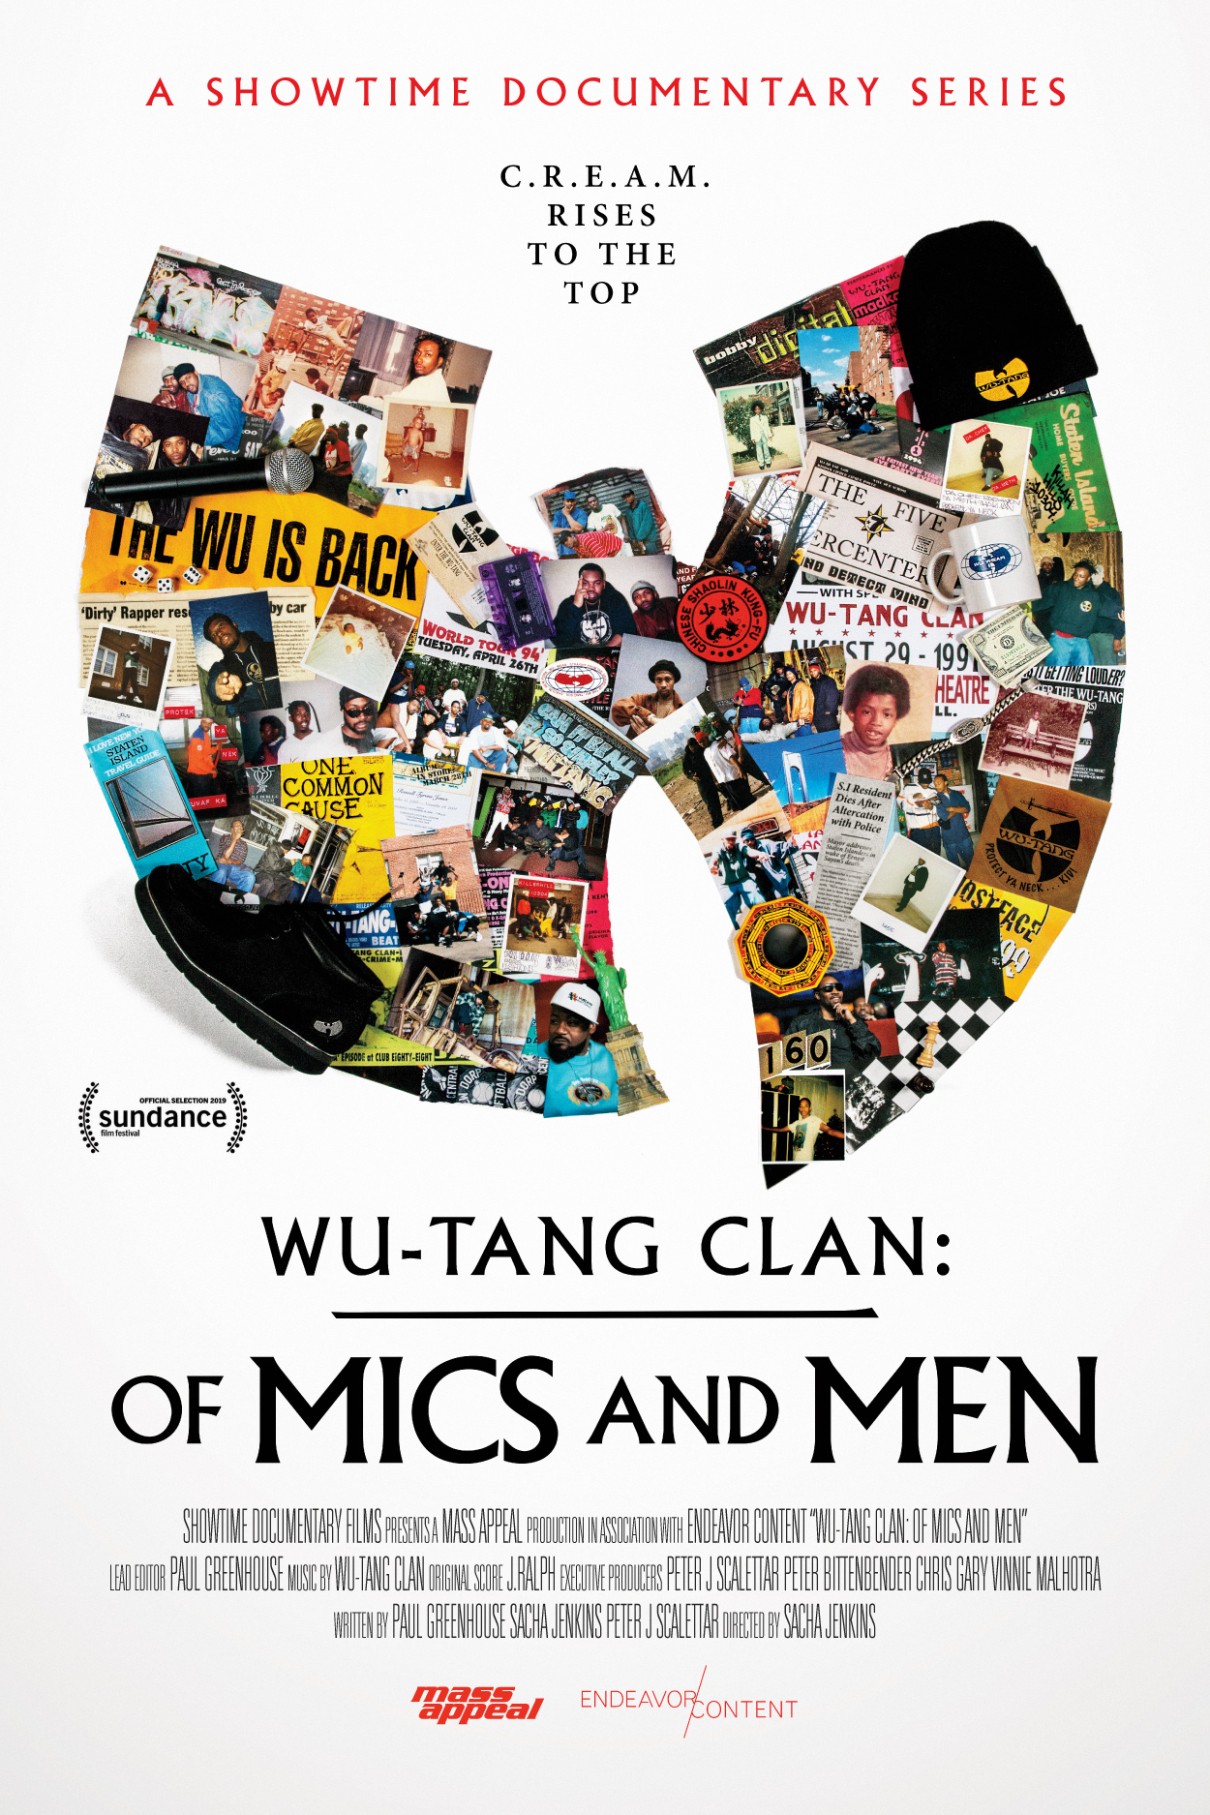 Wu-Tang Clan documentary series of mics and men